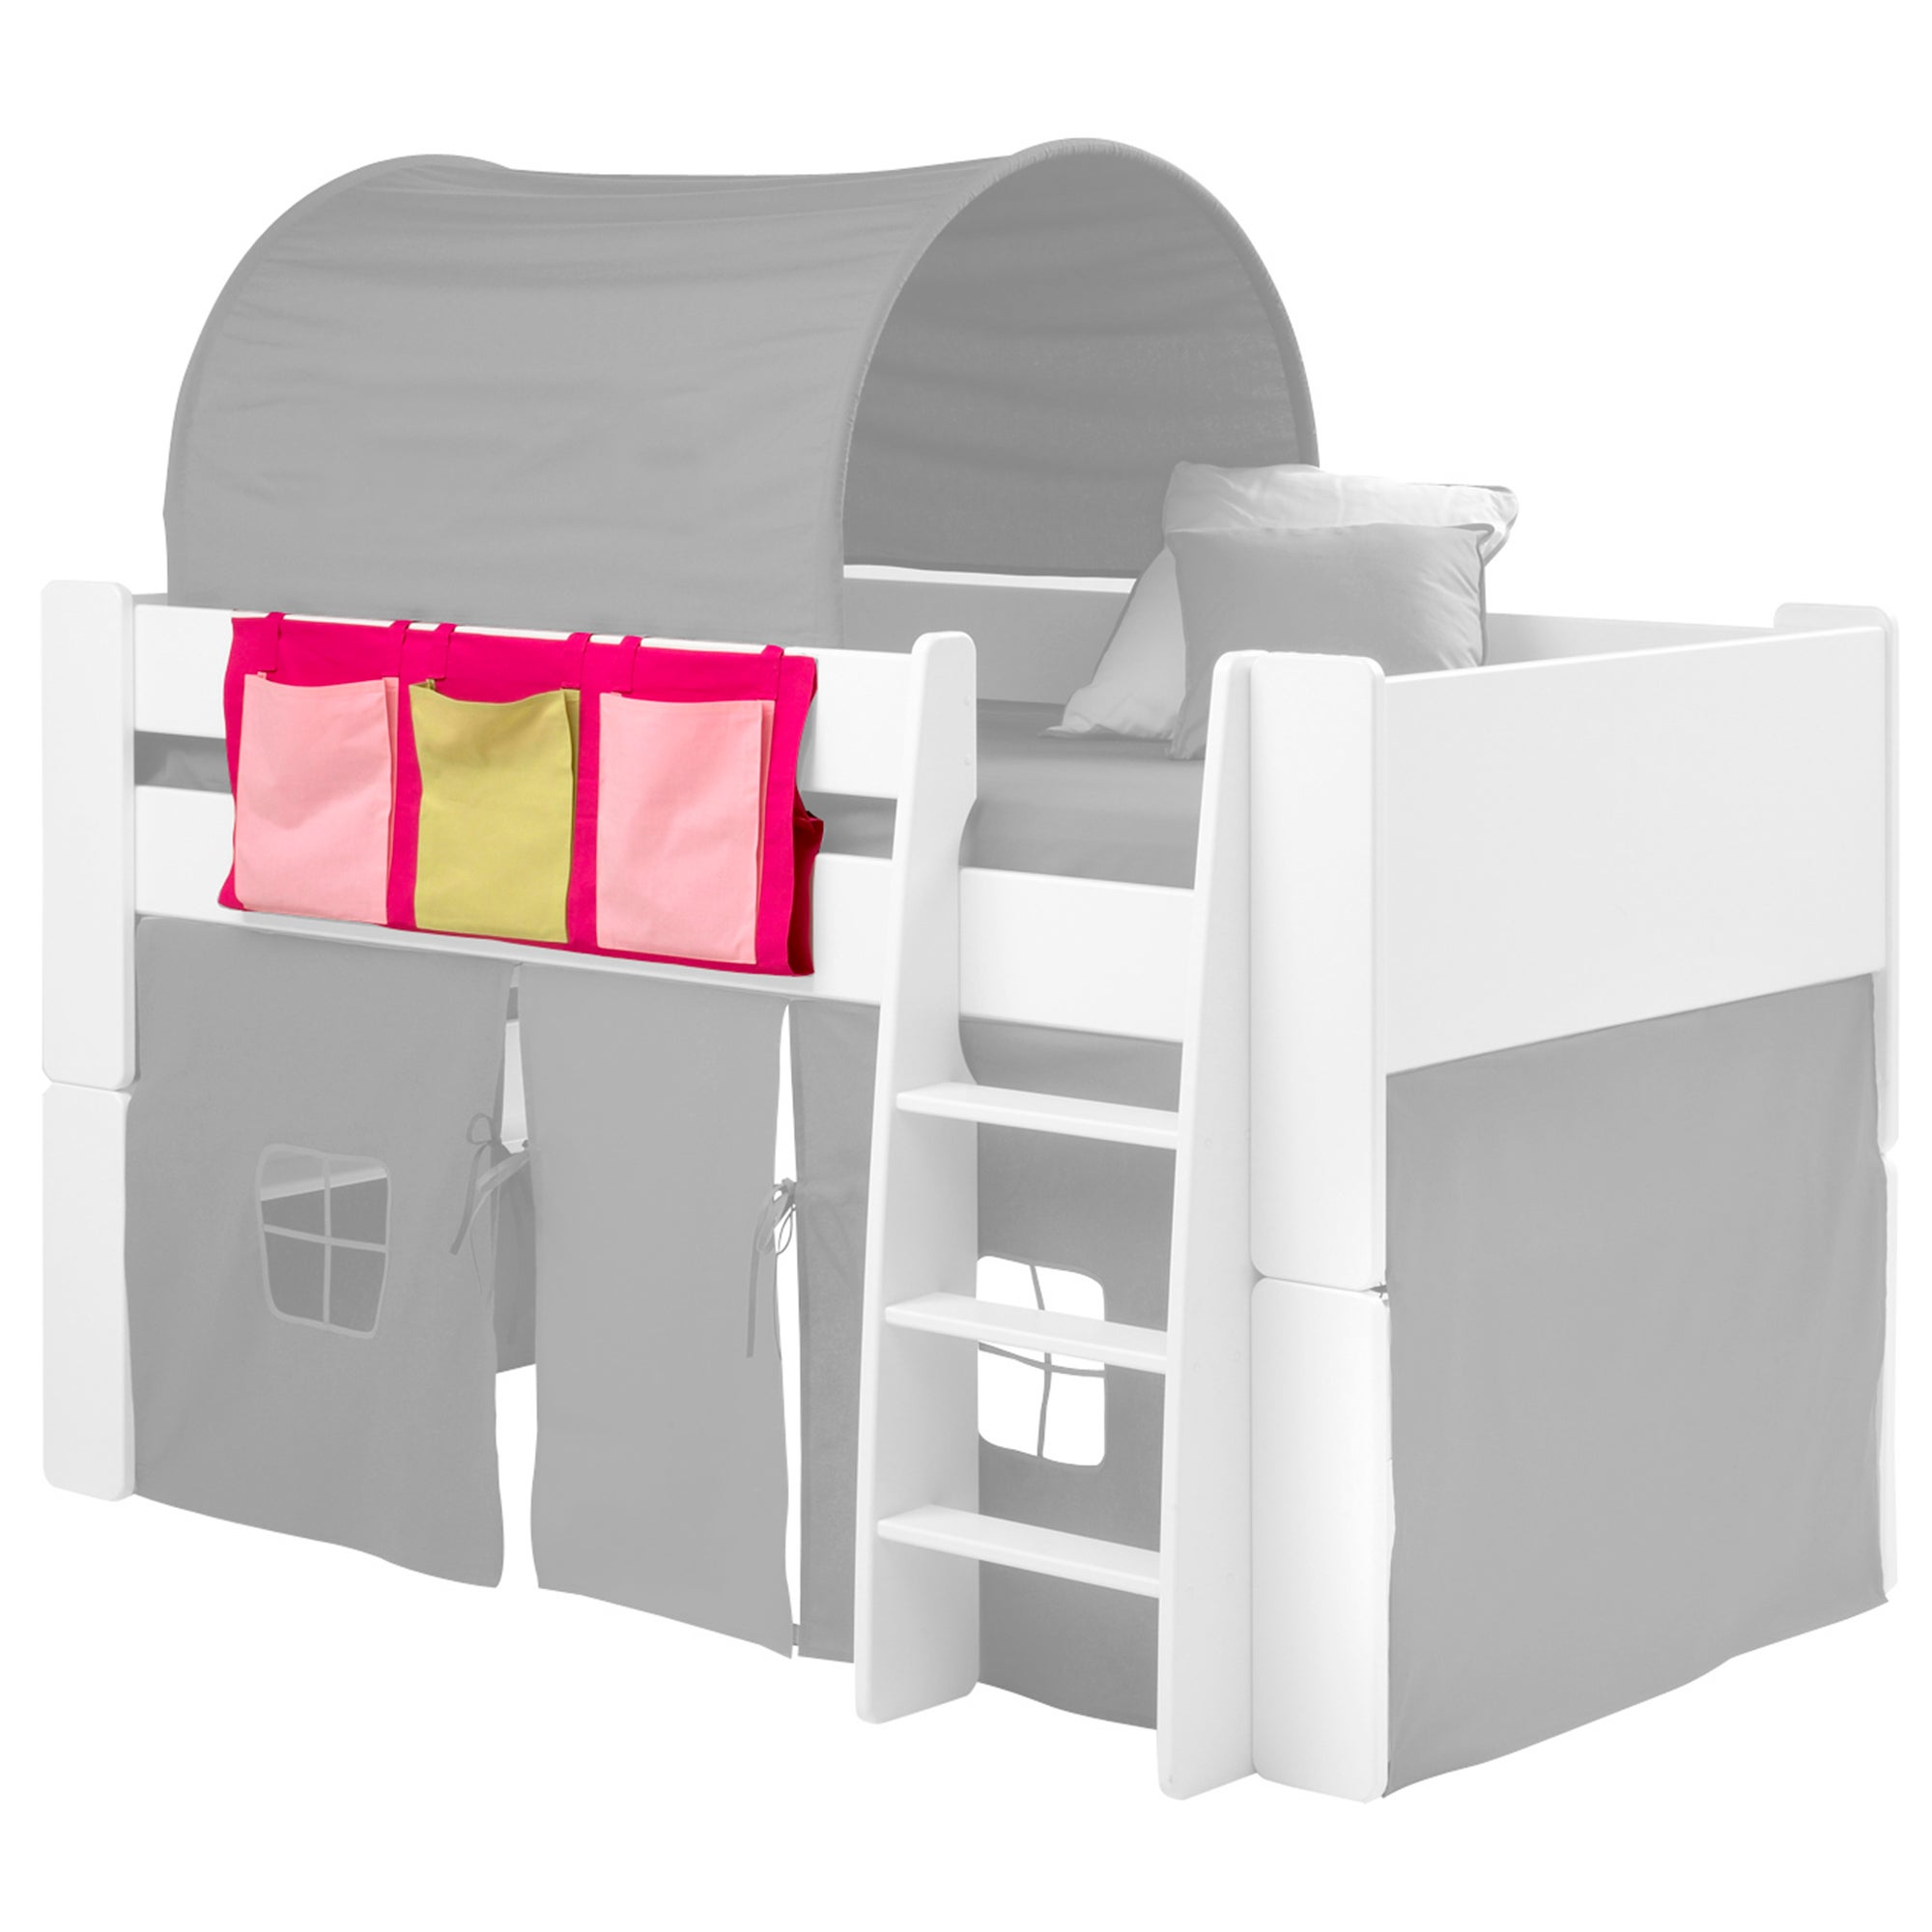 Pink 3 Pocket Side Hanger for Mid-Sleeper